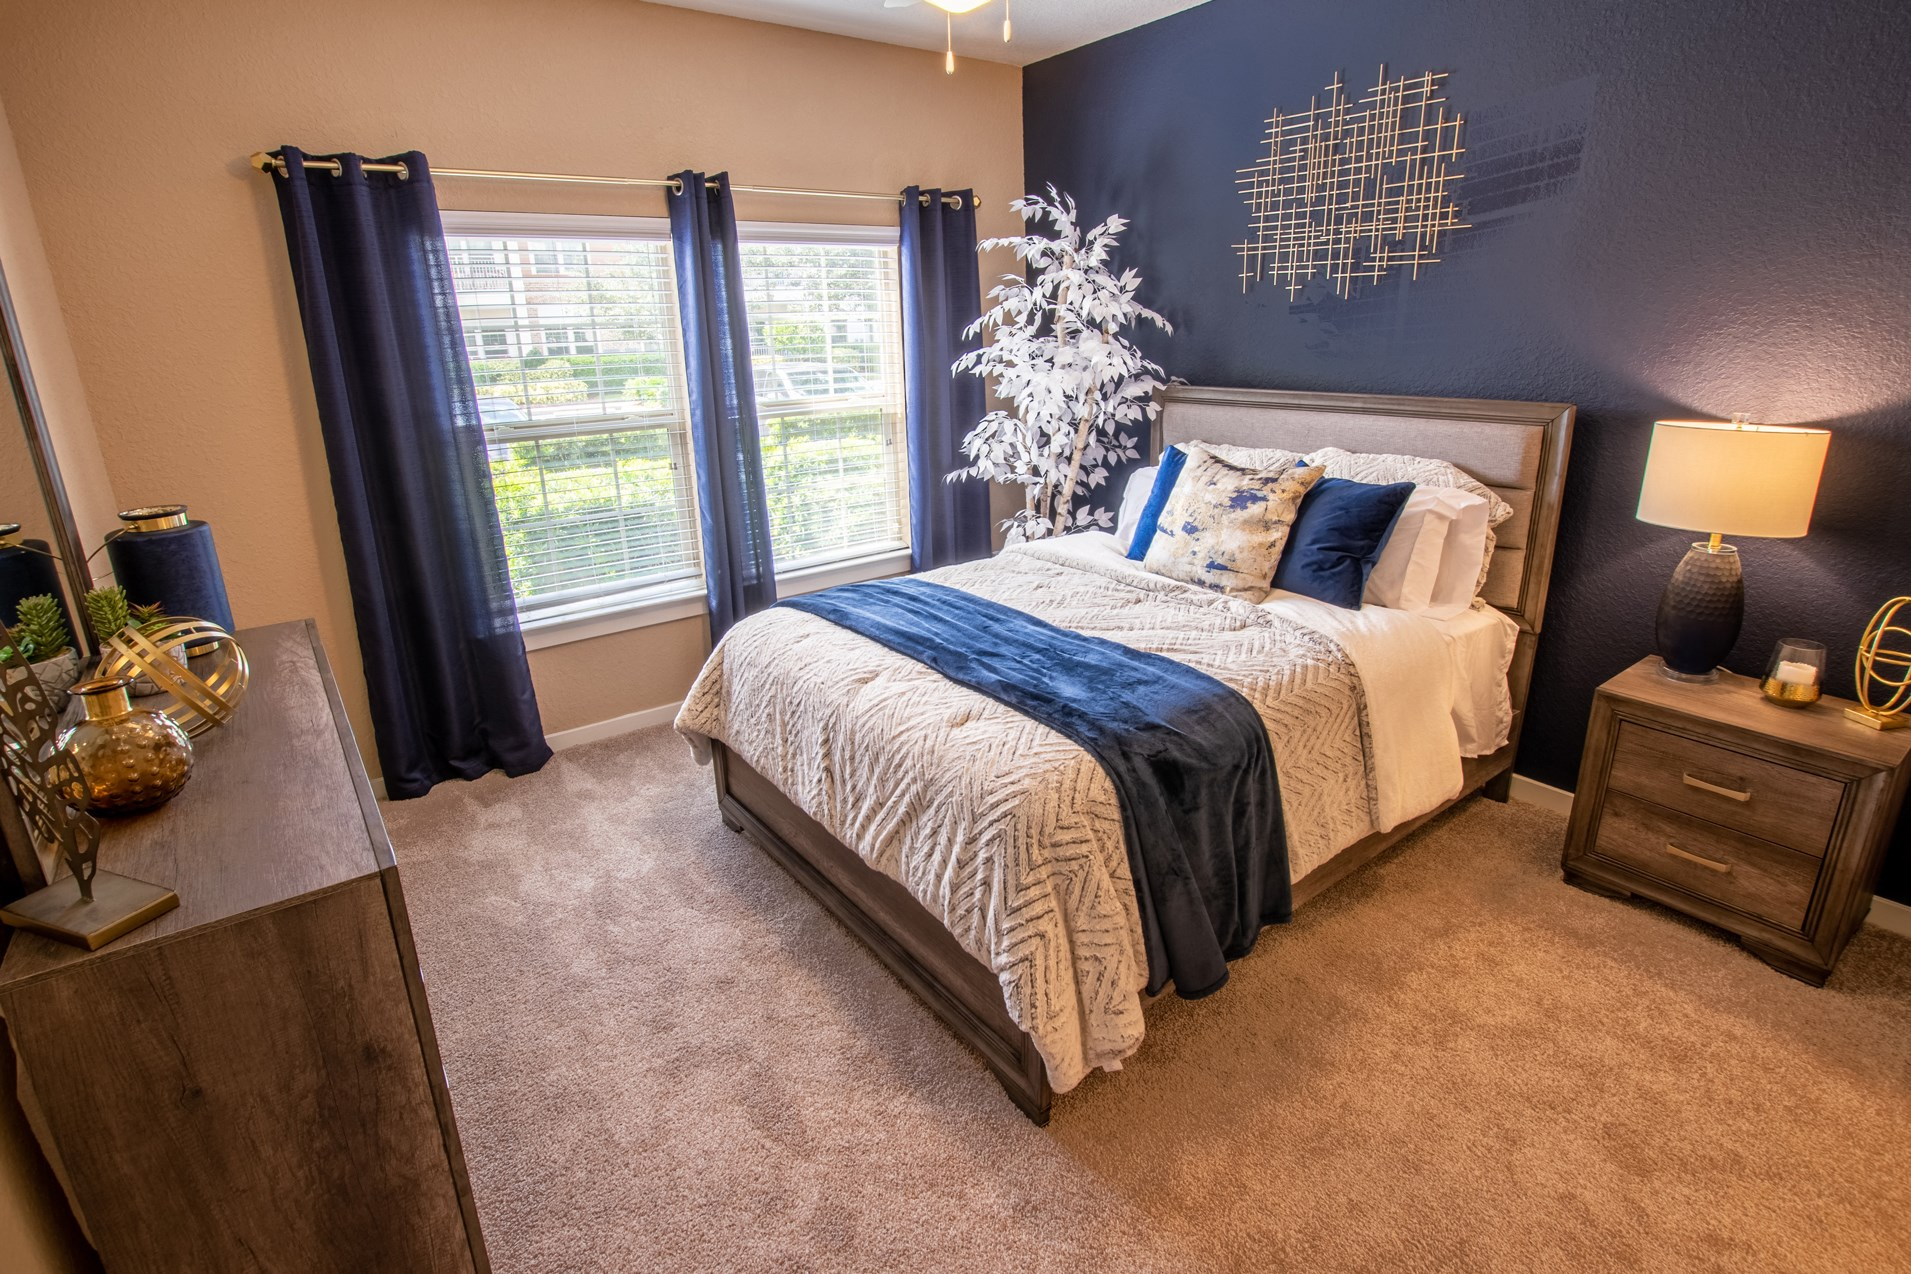 Bedroom at Park Place Apartments